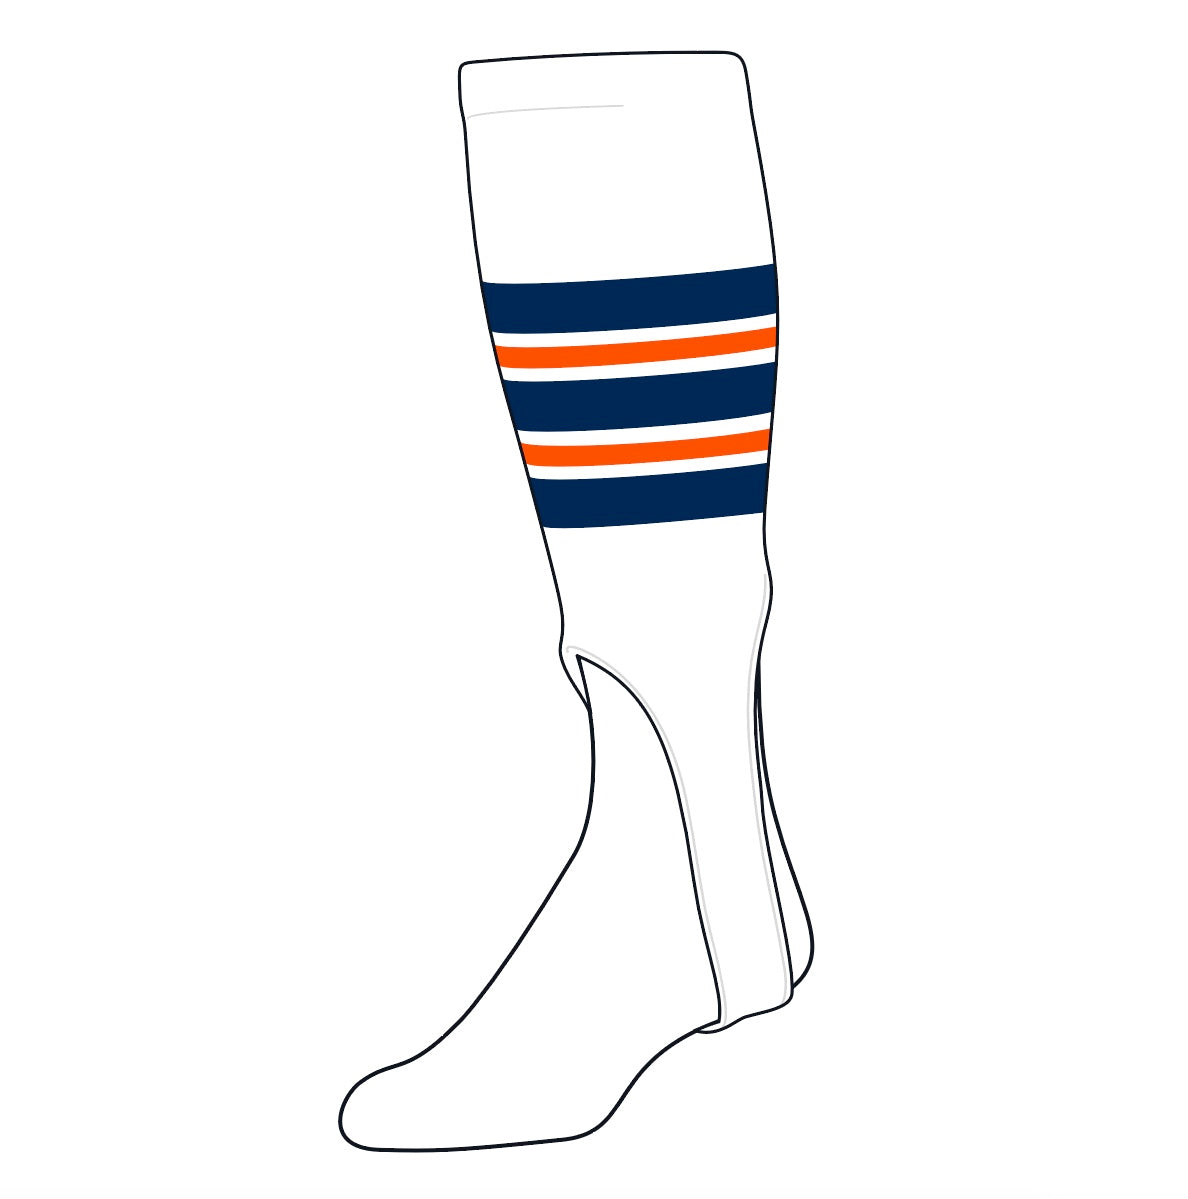 TCK Baseball Stirrups Medium (200F, 7in) White, Navy, Orange